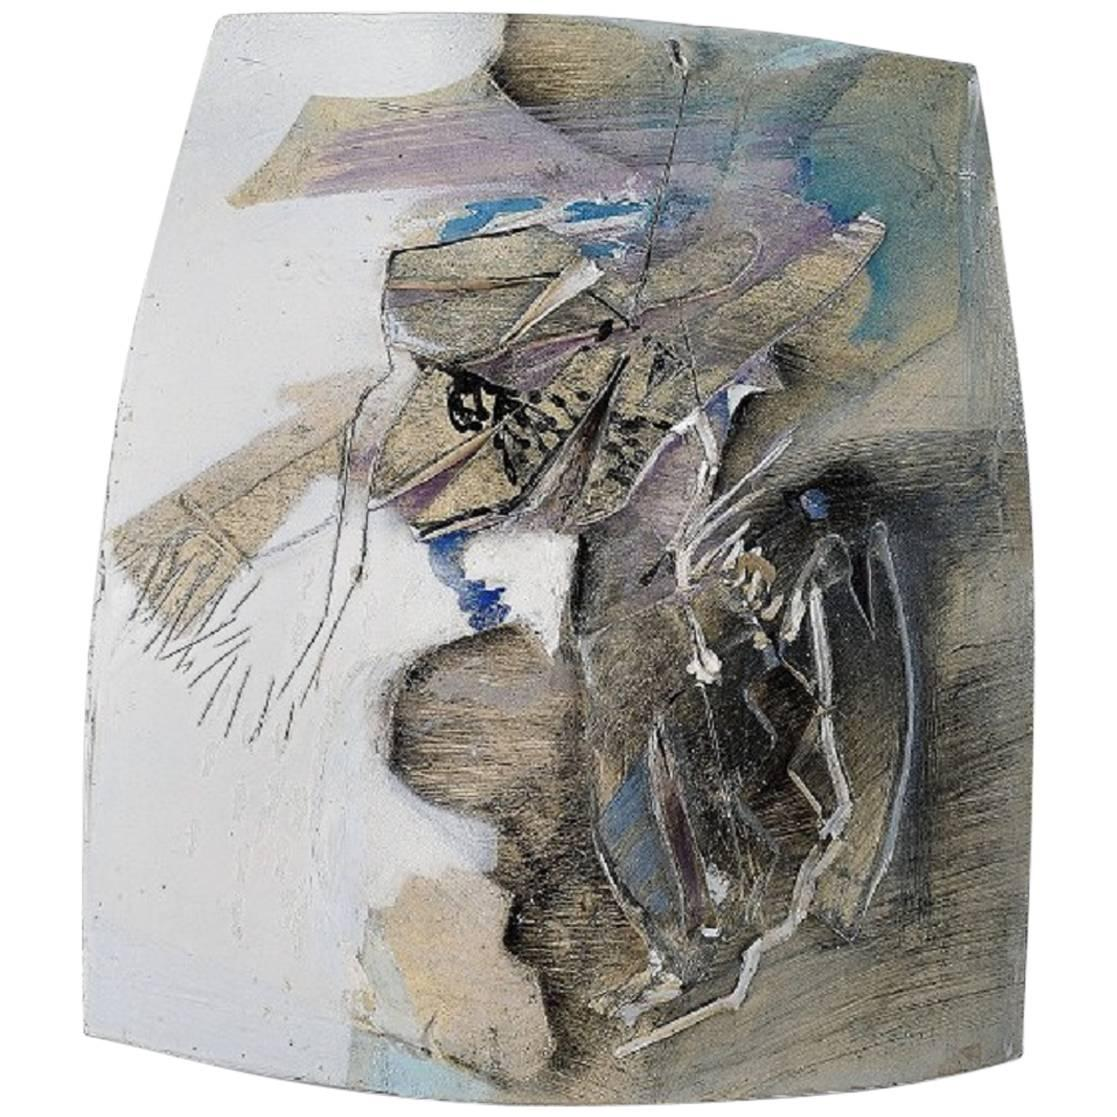 Jeppe Hagedorn-Olsen, Large Wall Plaque/Dish in Ceramics, Abstract Motif